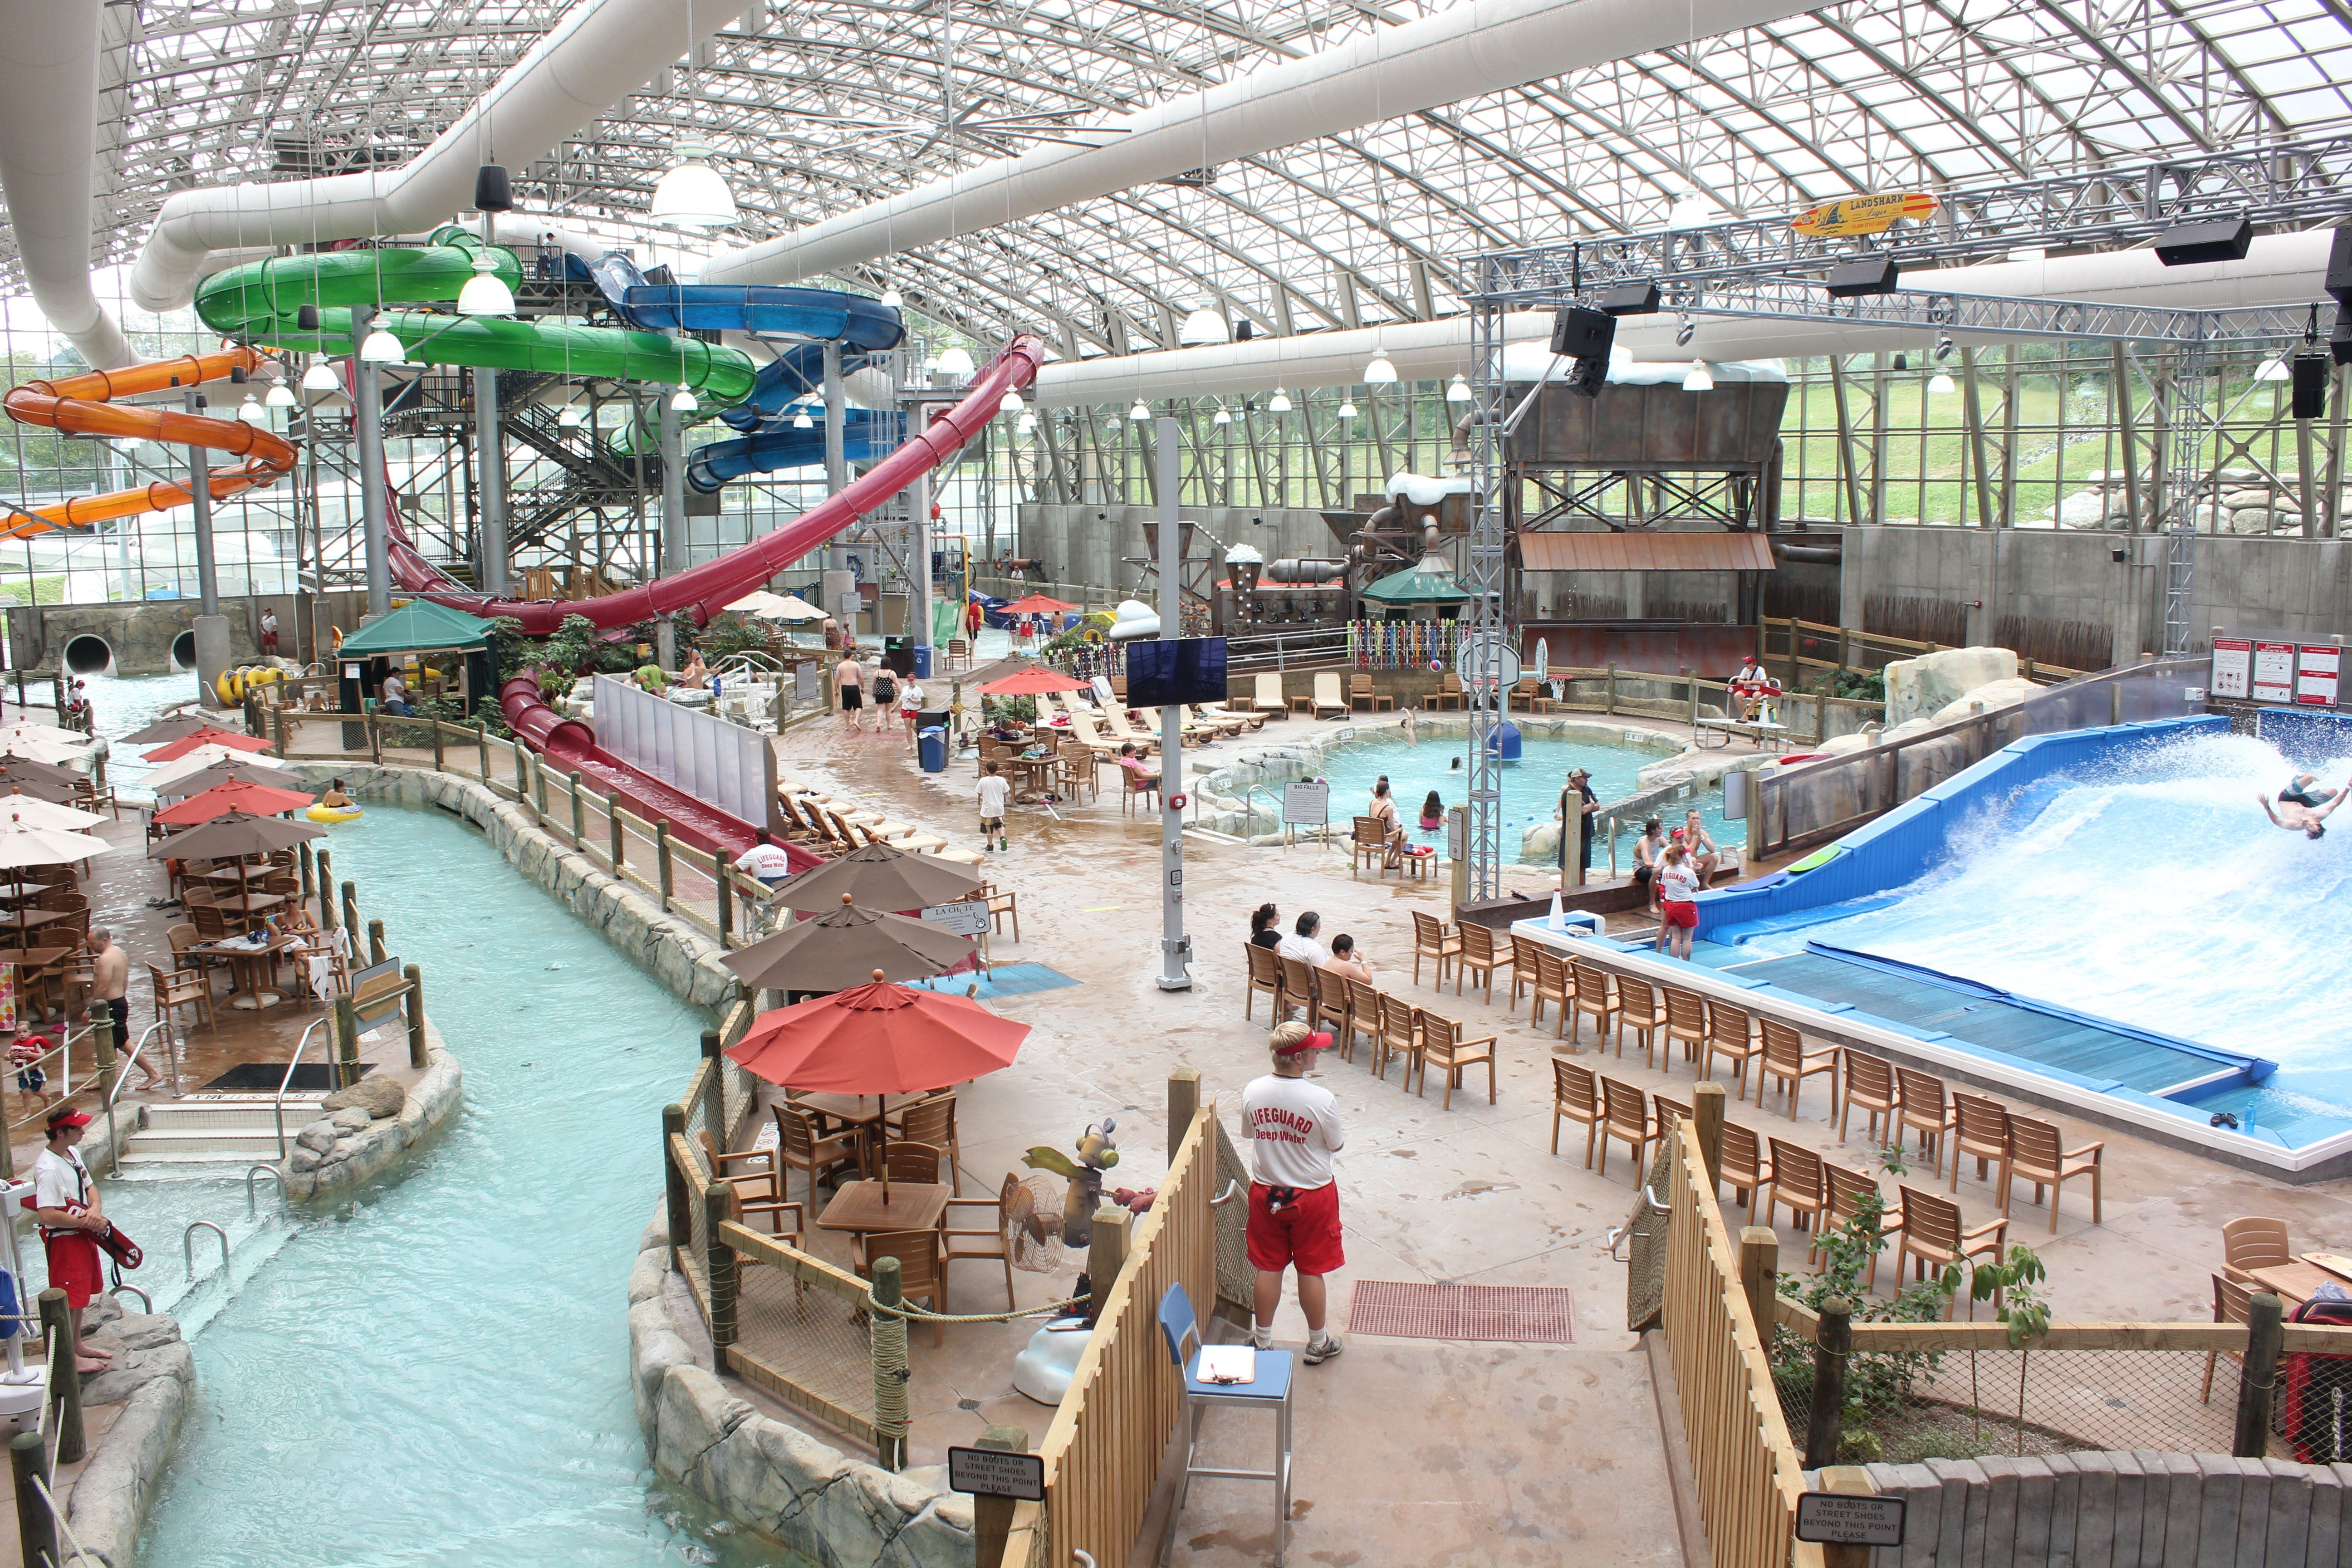 a summer visit to jay peak resort's pump house indoor waterpark